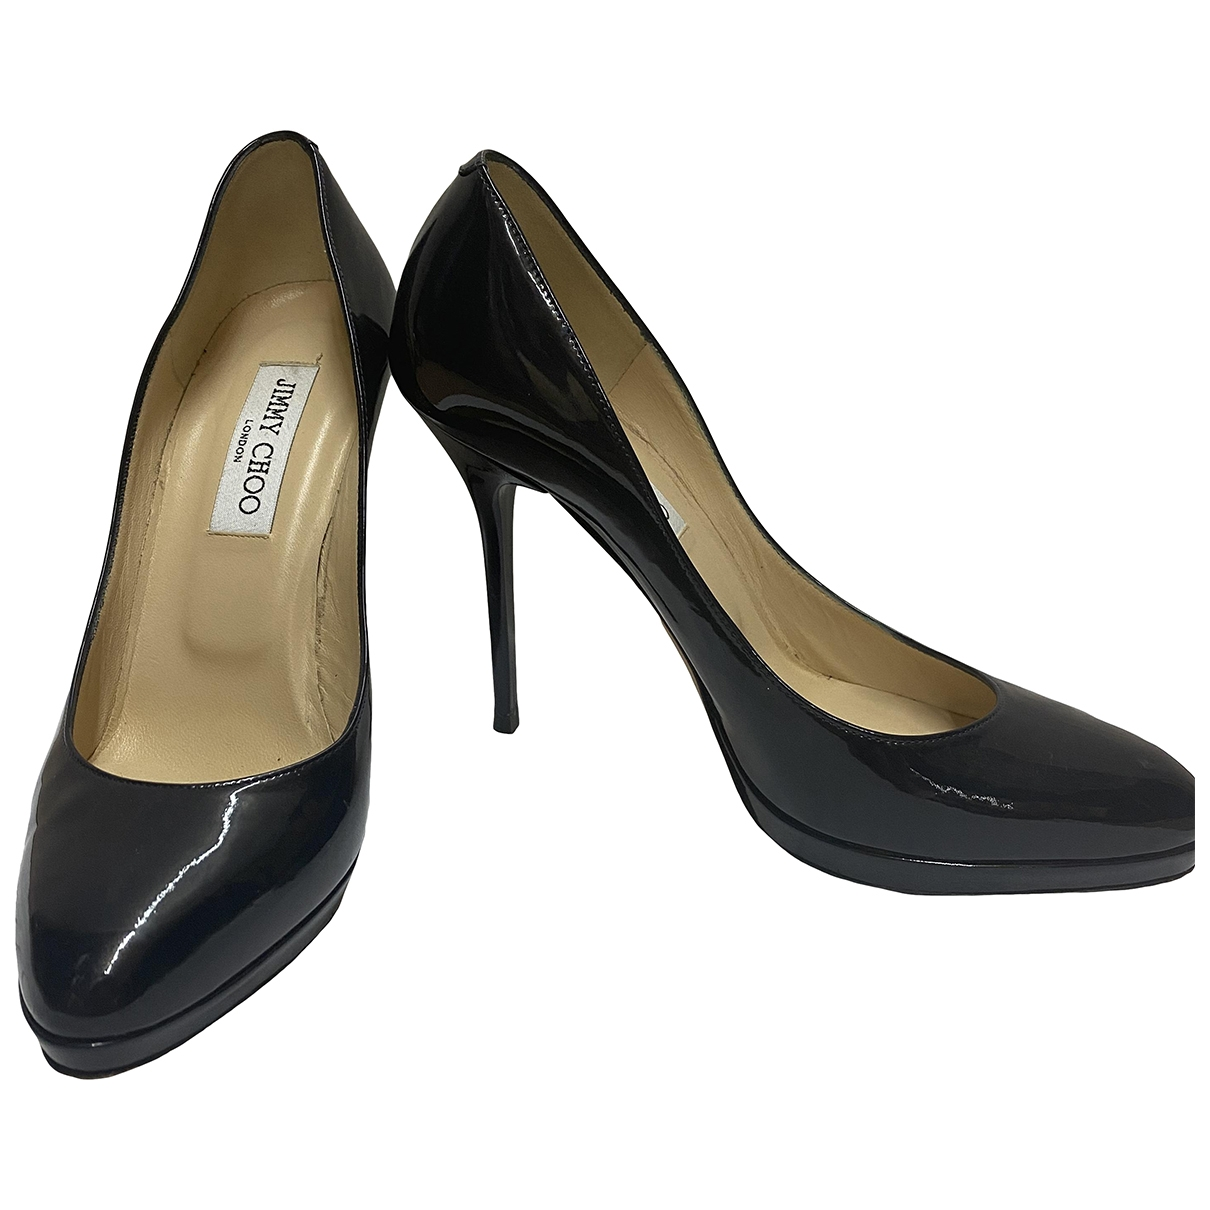 Jimmy Choo \N Navy Patent leather Heels for Women 4 UK